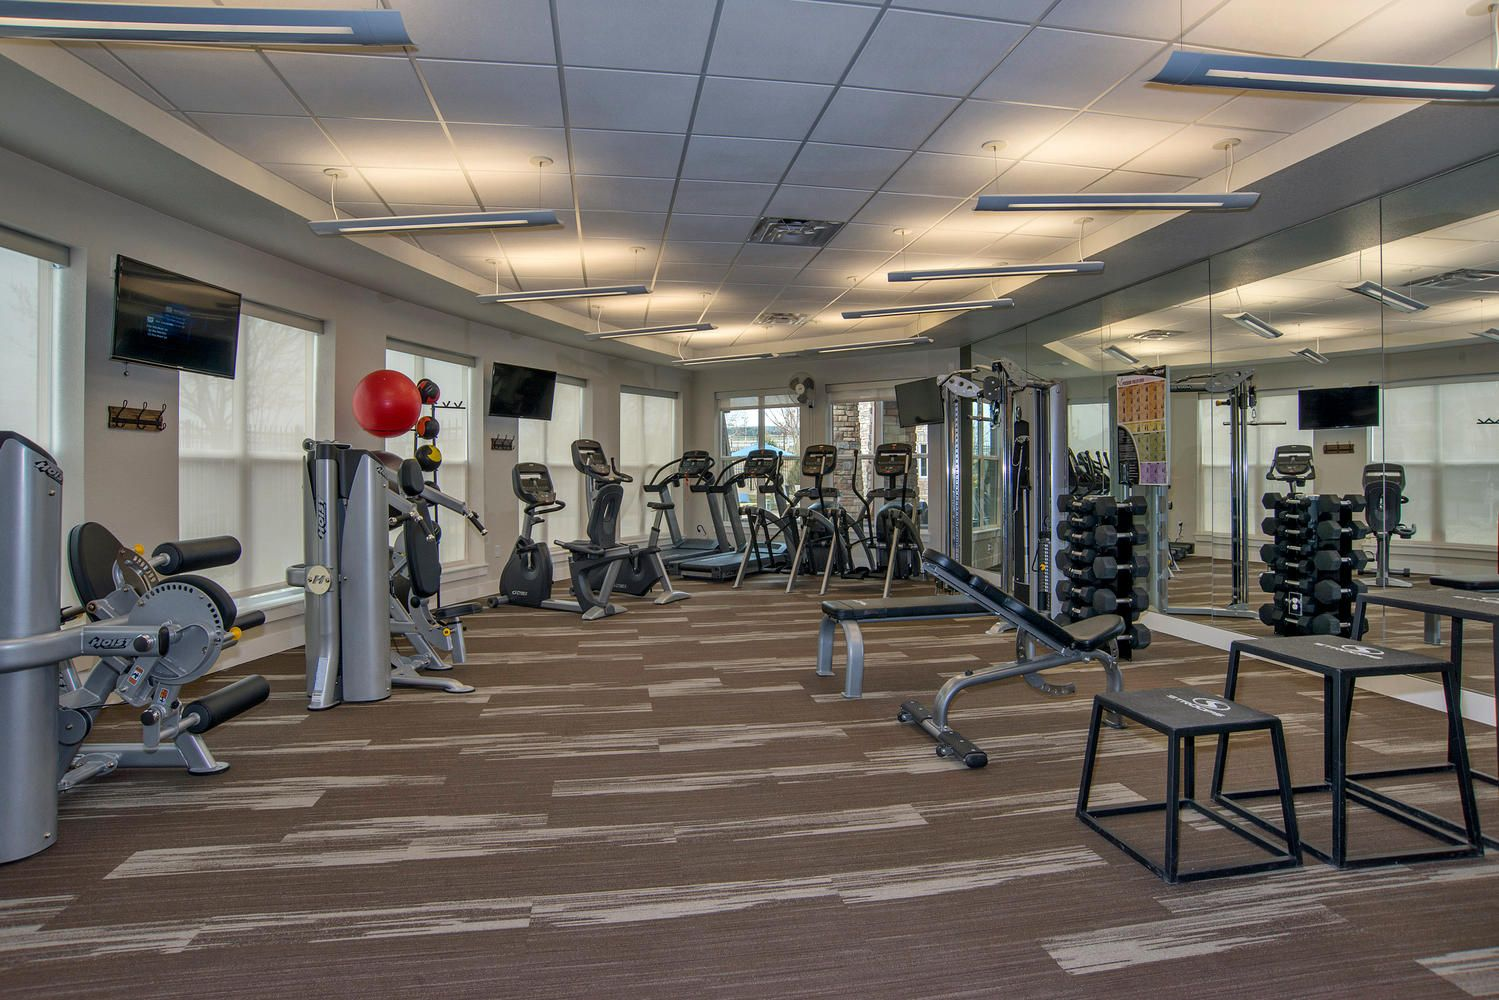 24 hr stateoftheart fitness center with free weights